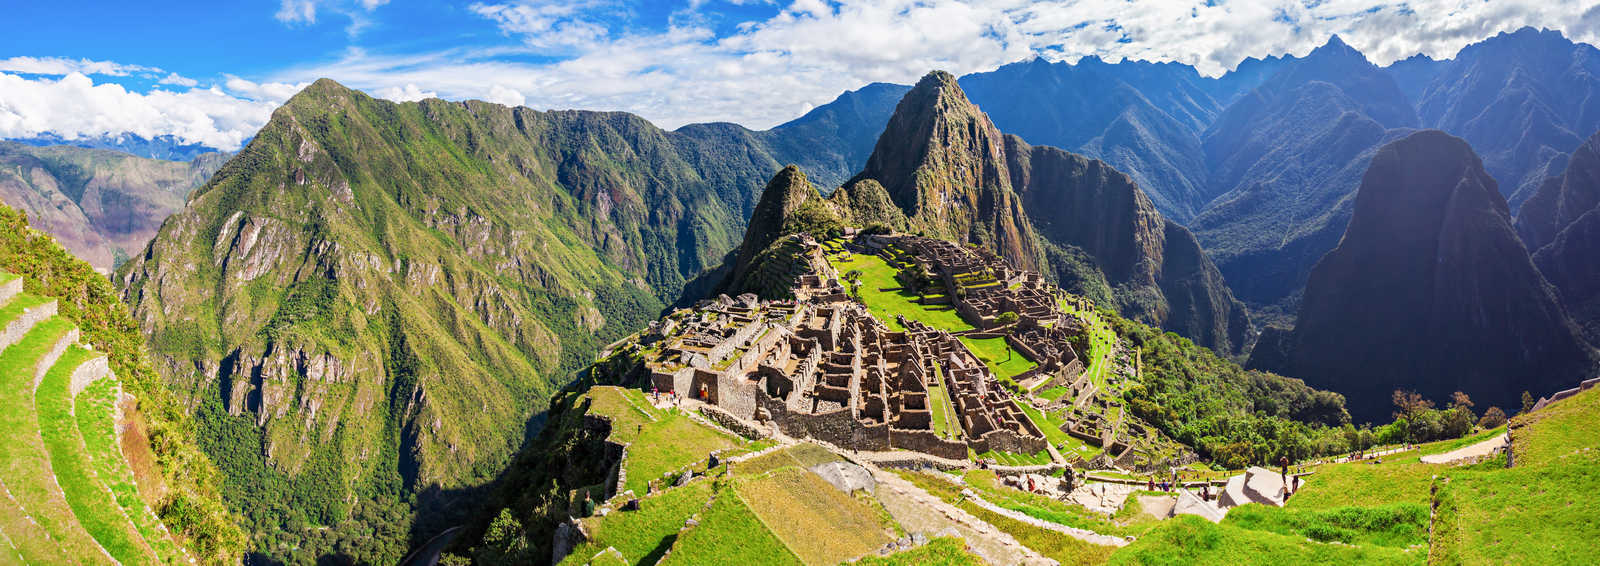 Machu Picchu, one of the New Seven Wonders of the World, Peru